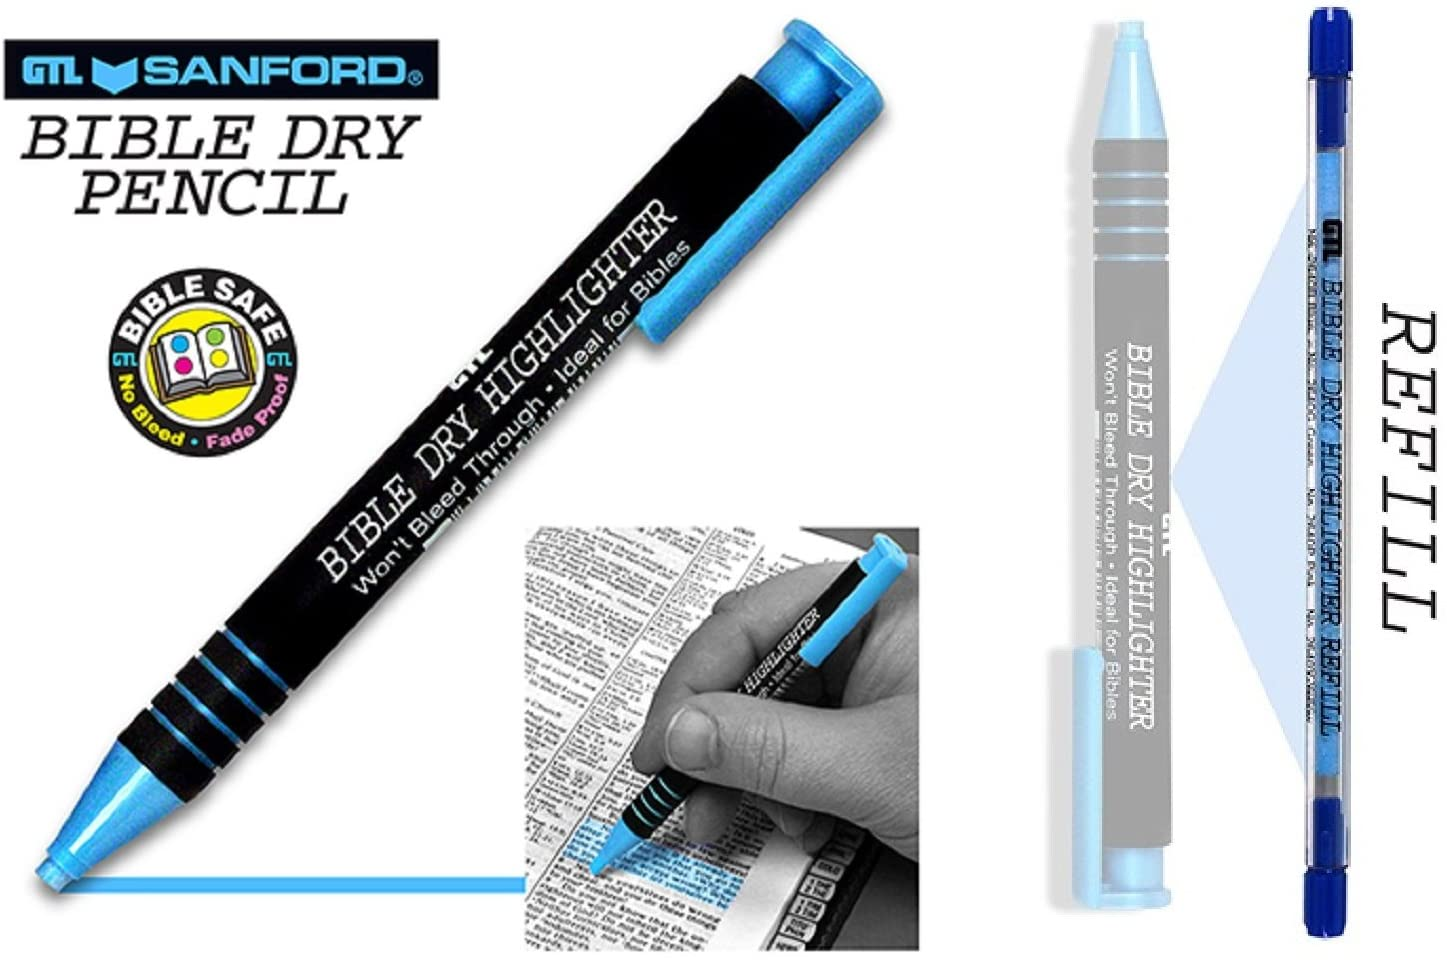 Dry Bible/Book Highlighter Pen With 2 Pack Bible/Book Dry Highlighter Refill (Blue)